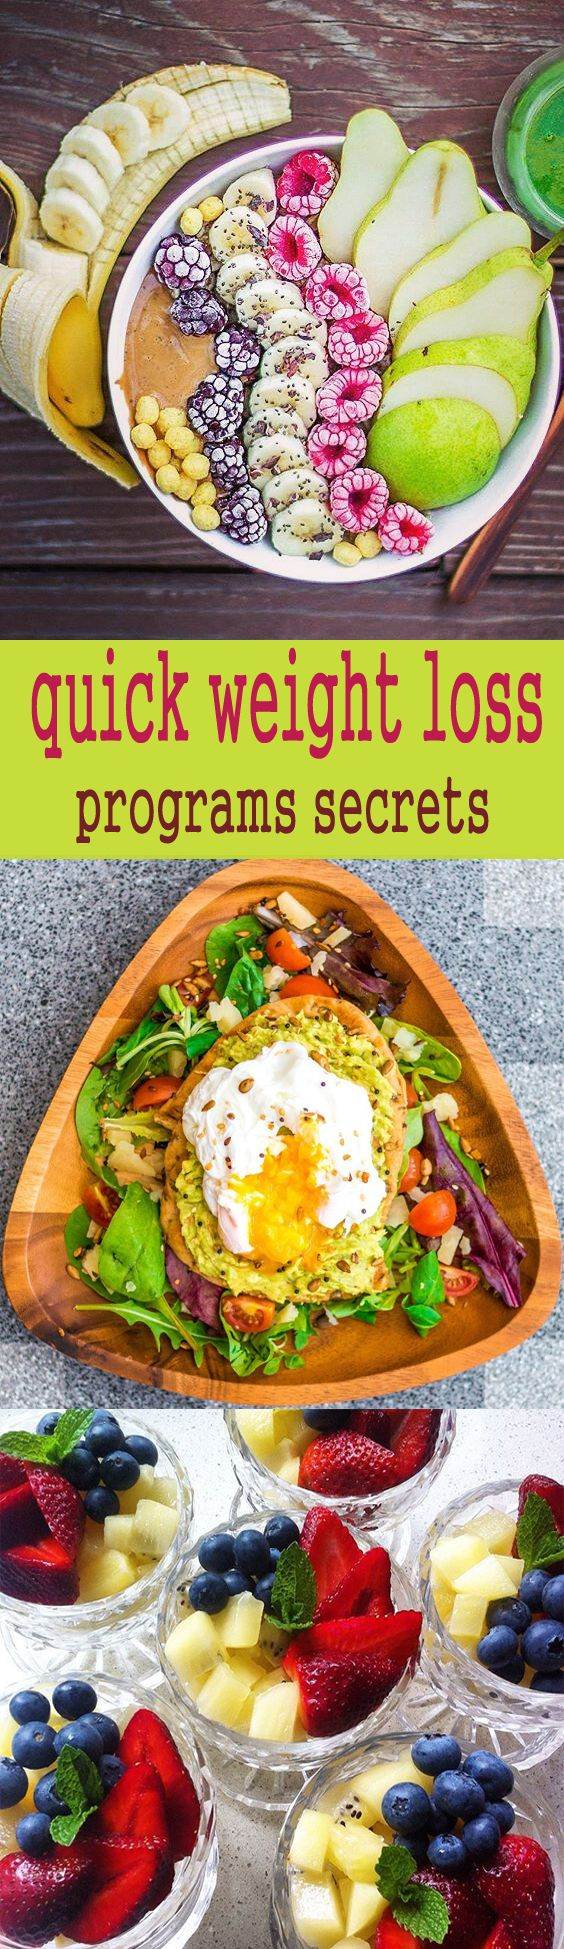 Top weight loss supplements 2017 picture 1